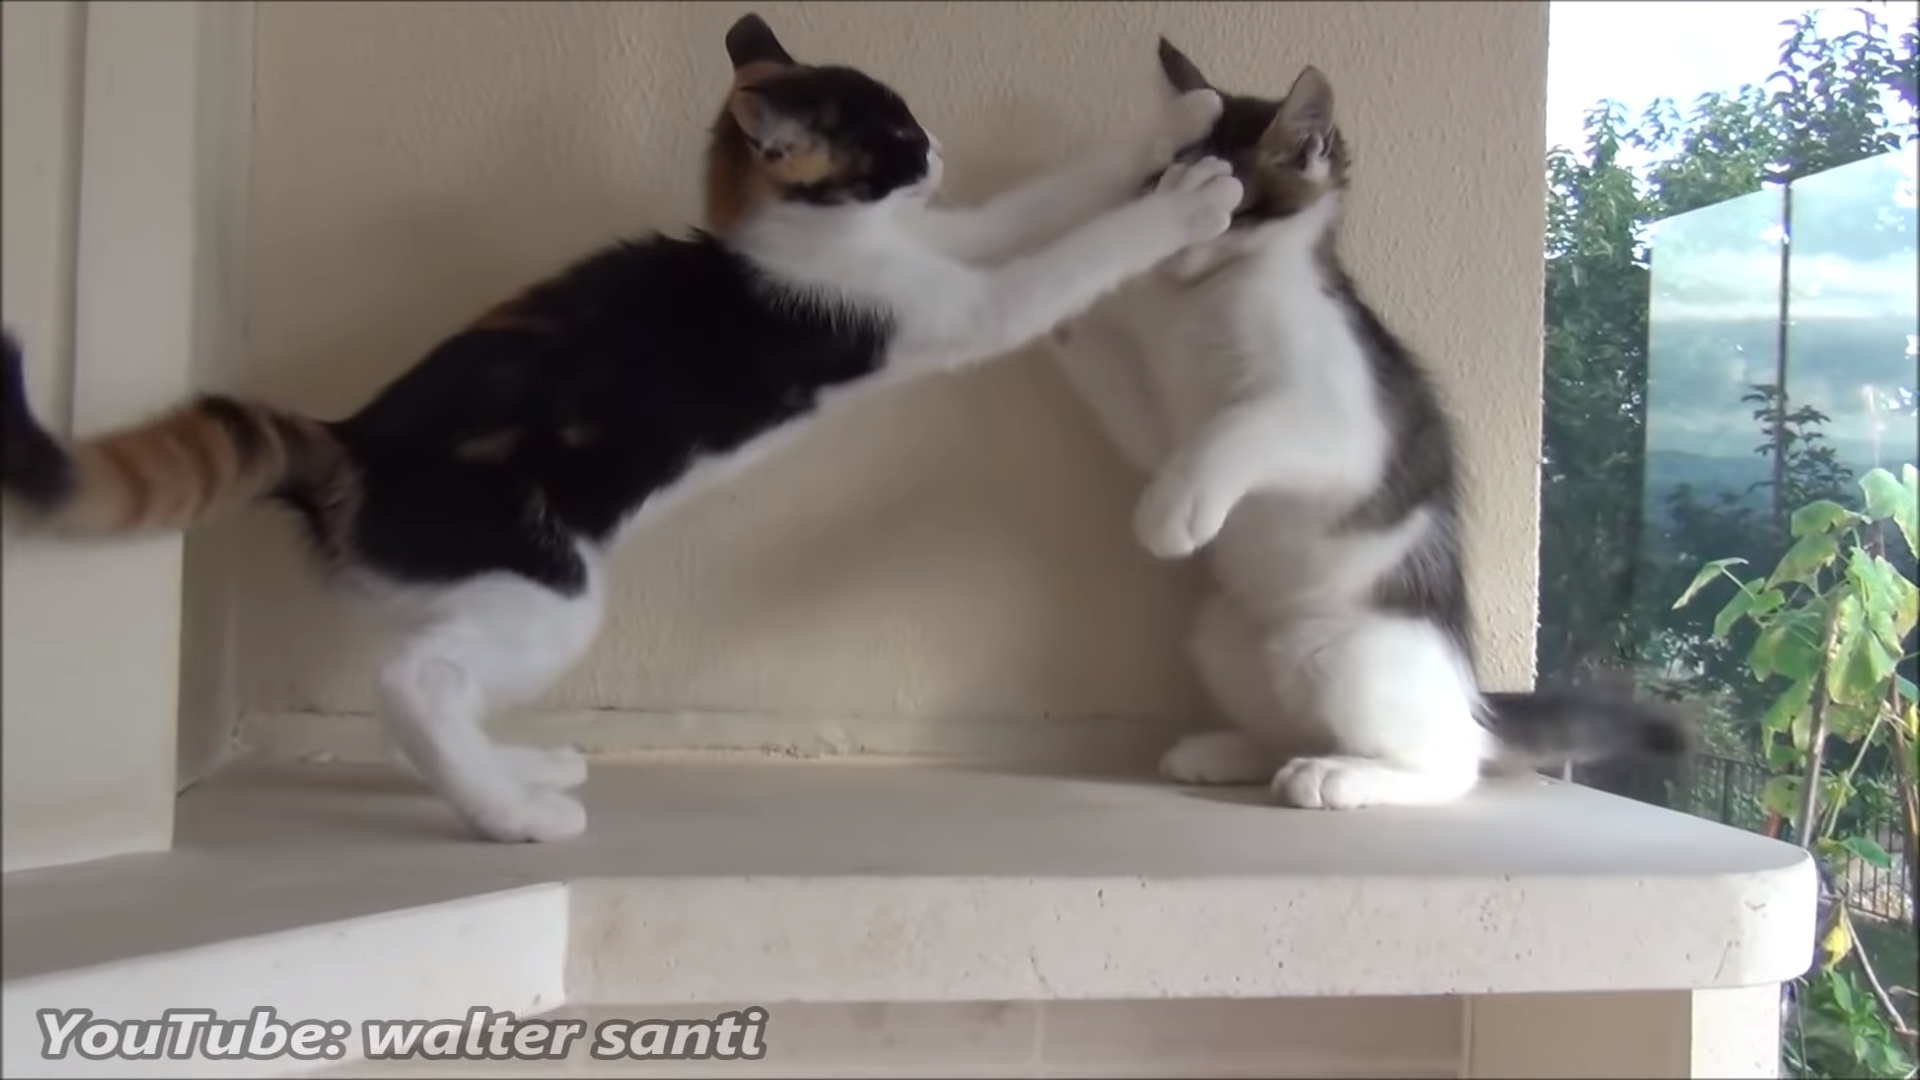 The most playful kittens in the world